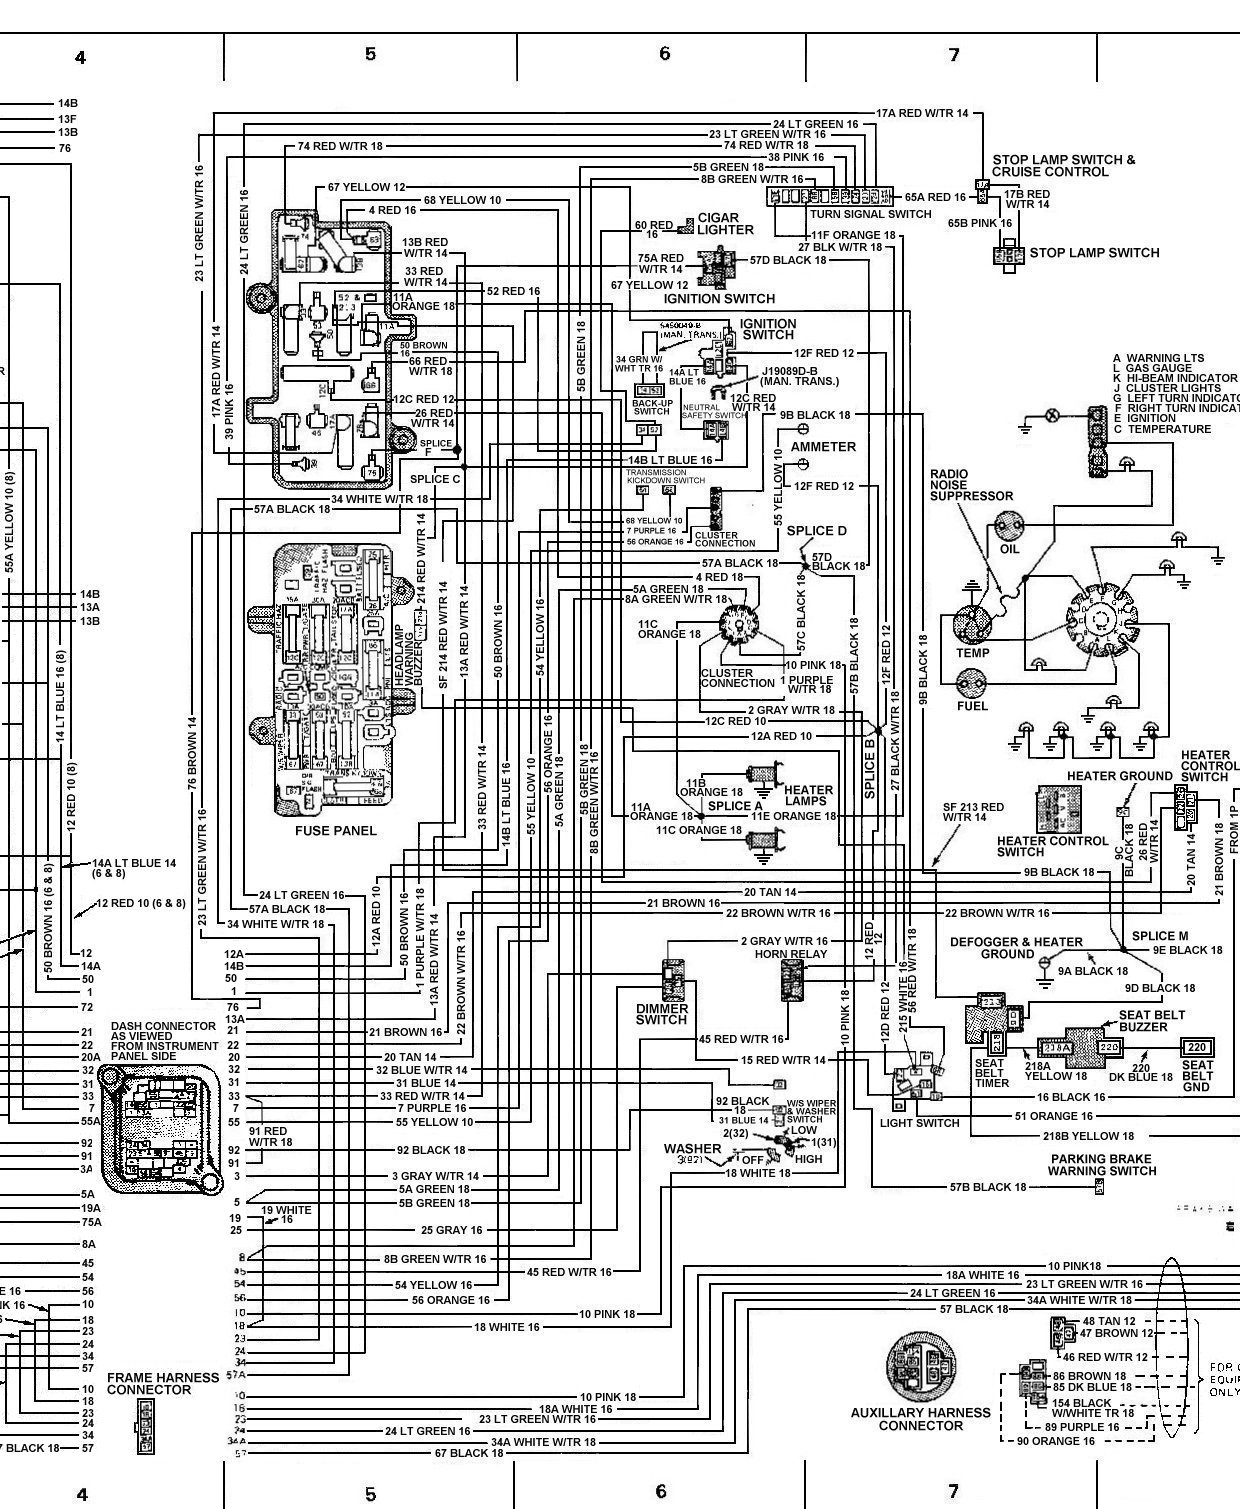 Jeep j20 wiring diagram wiring diagram database tom oljeep collins fsj wiring page 2000 jeep grand cherokee wiring schematic jeep j20 wiring diagram asfbconference2016 Image collections